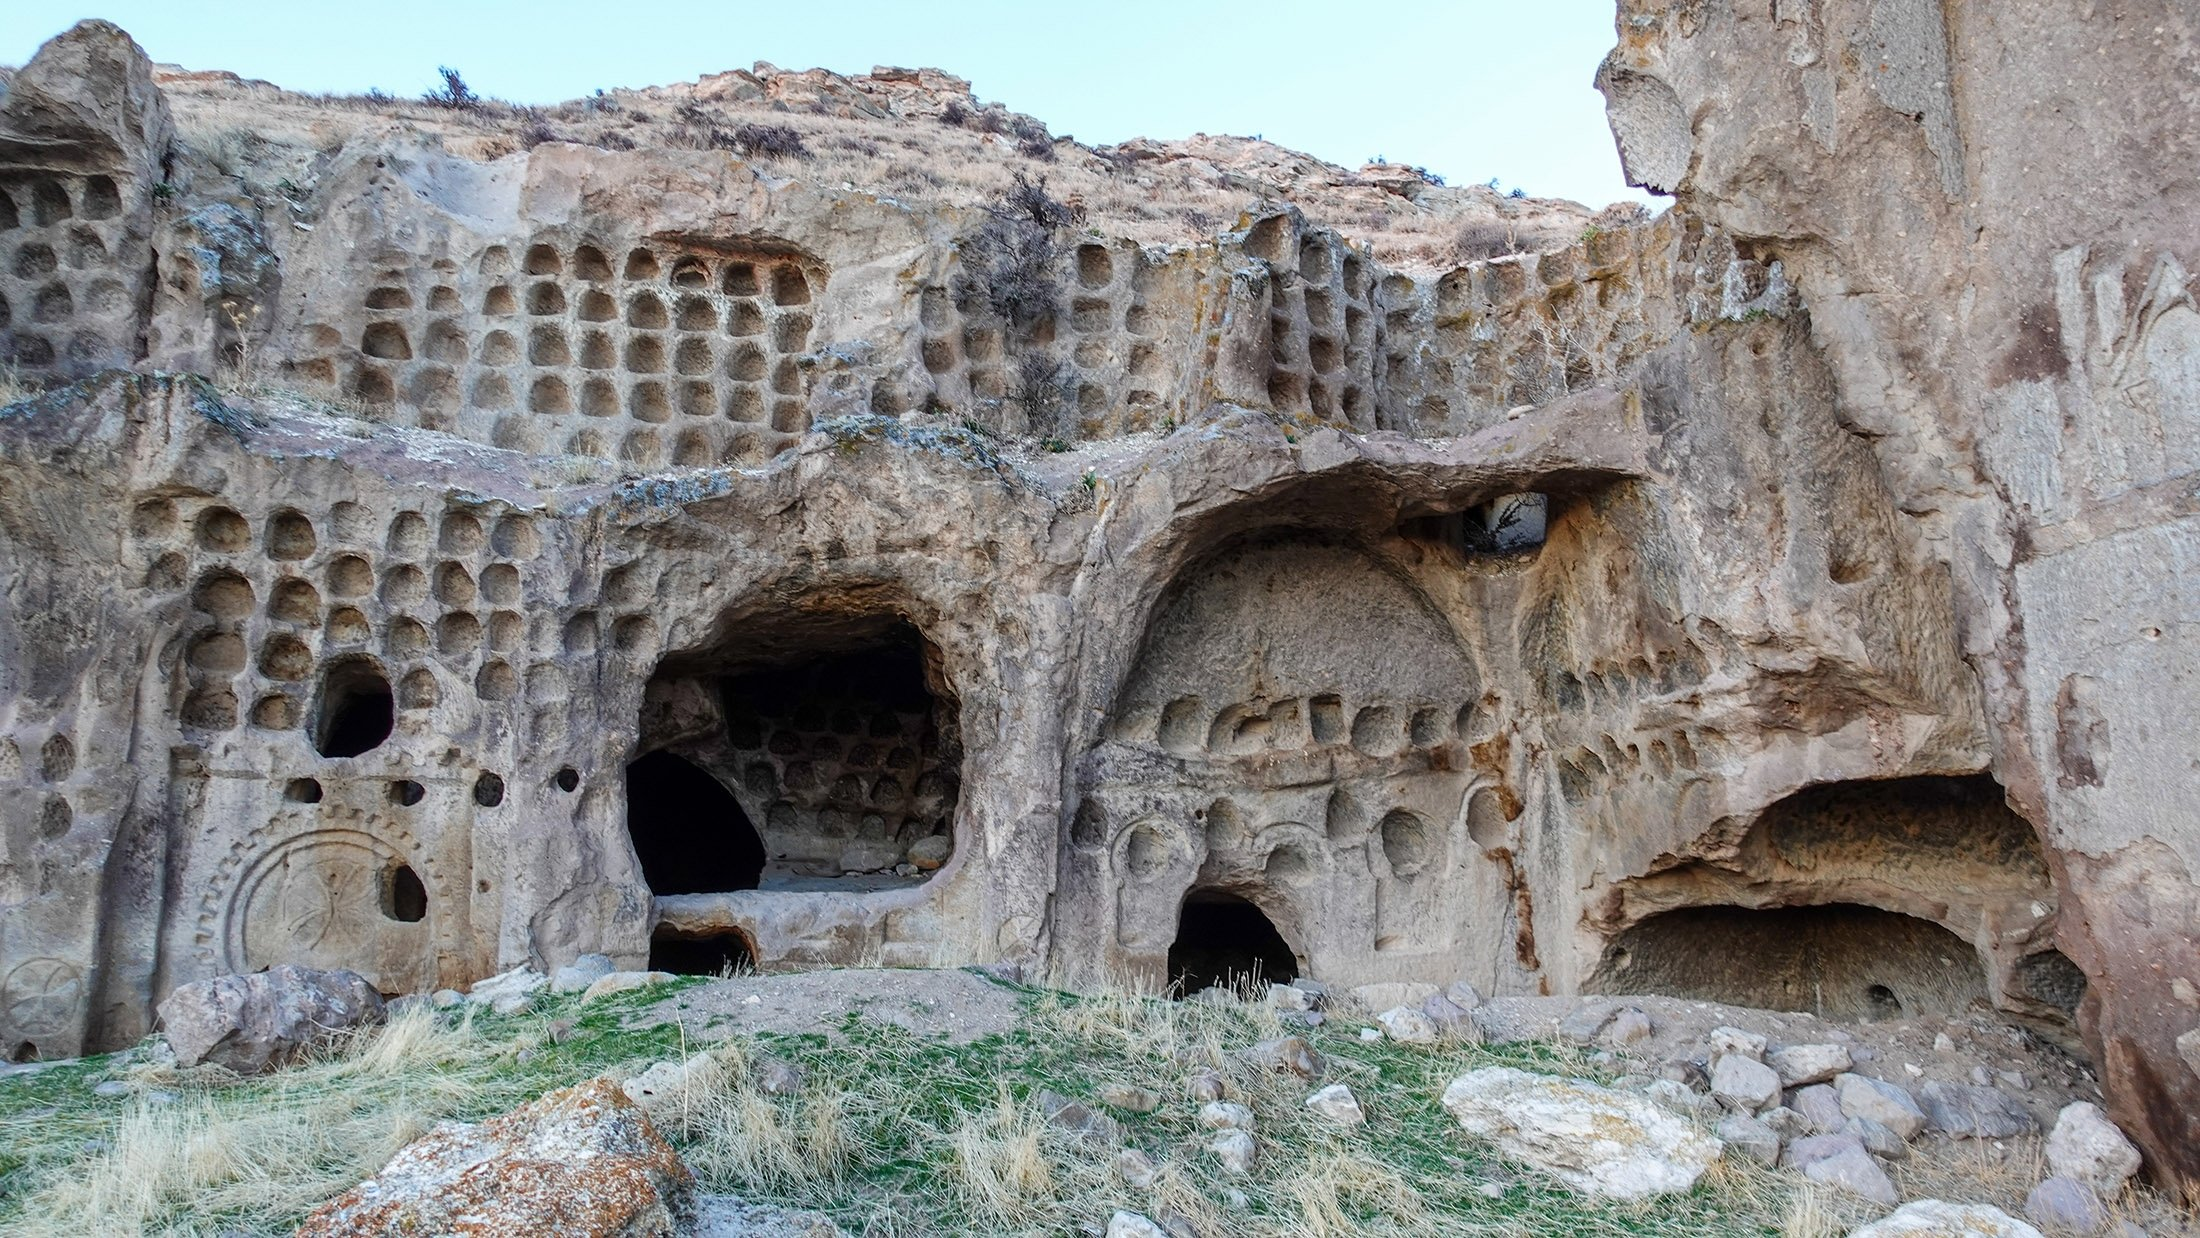 The facade of one of the residential cave units, covered in pigeon lofts which were used to collect pigeon dung for fertilizer. (Photo by Argun Konuk)